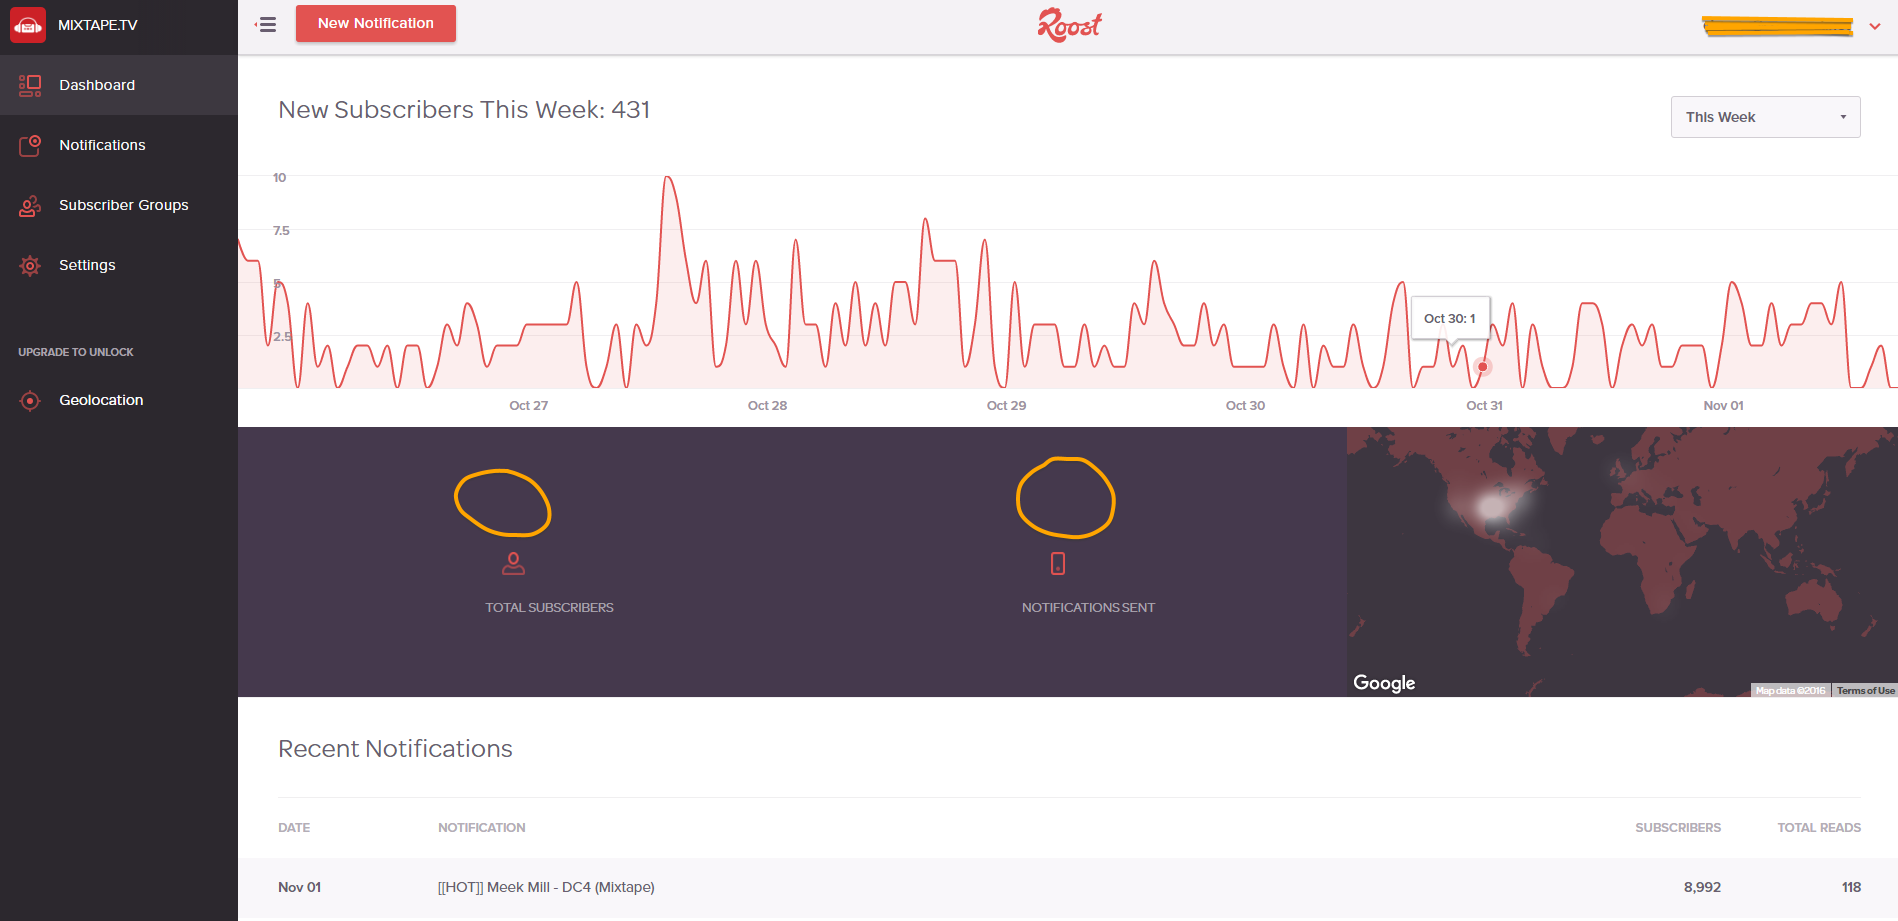 roost-stats-dashboard-missing